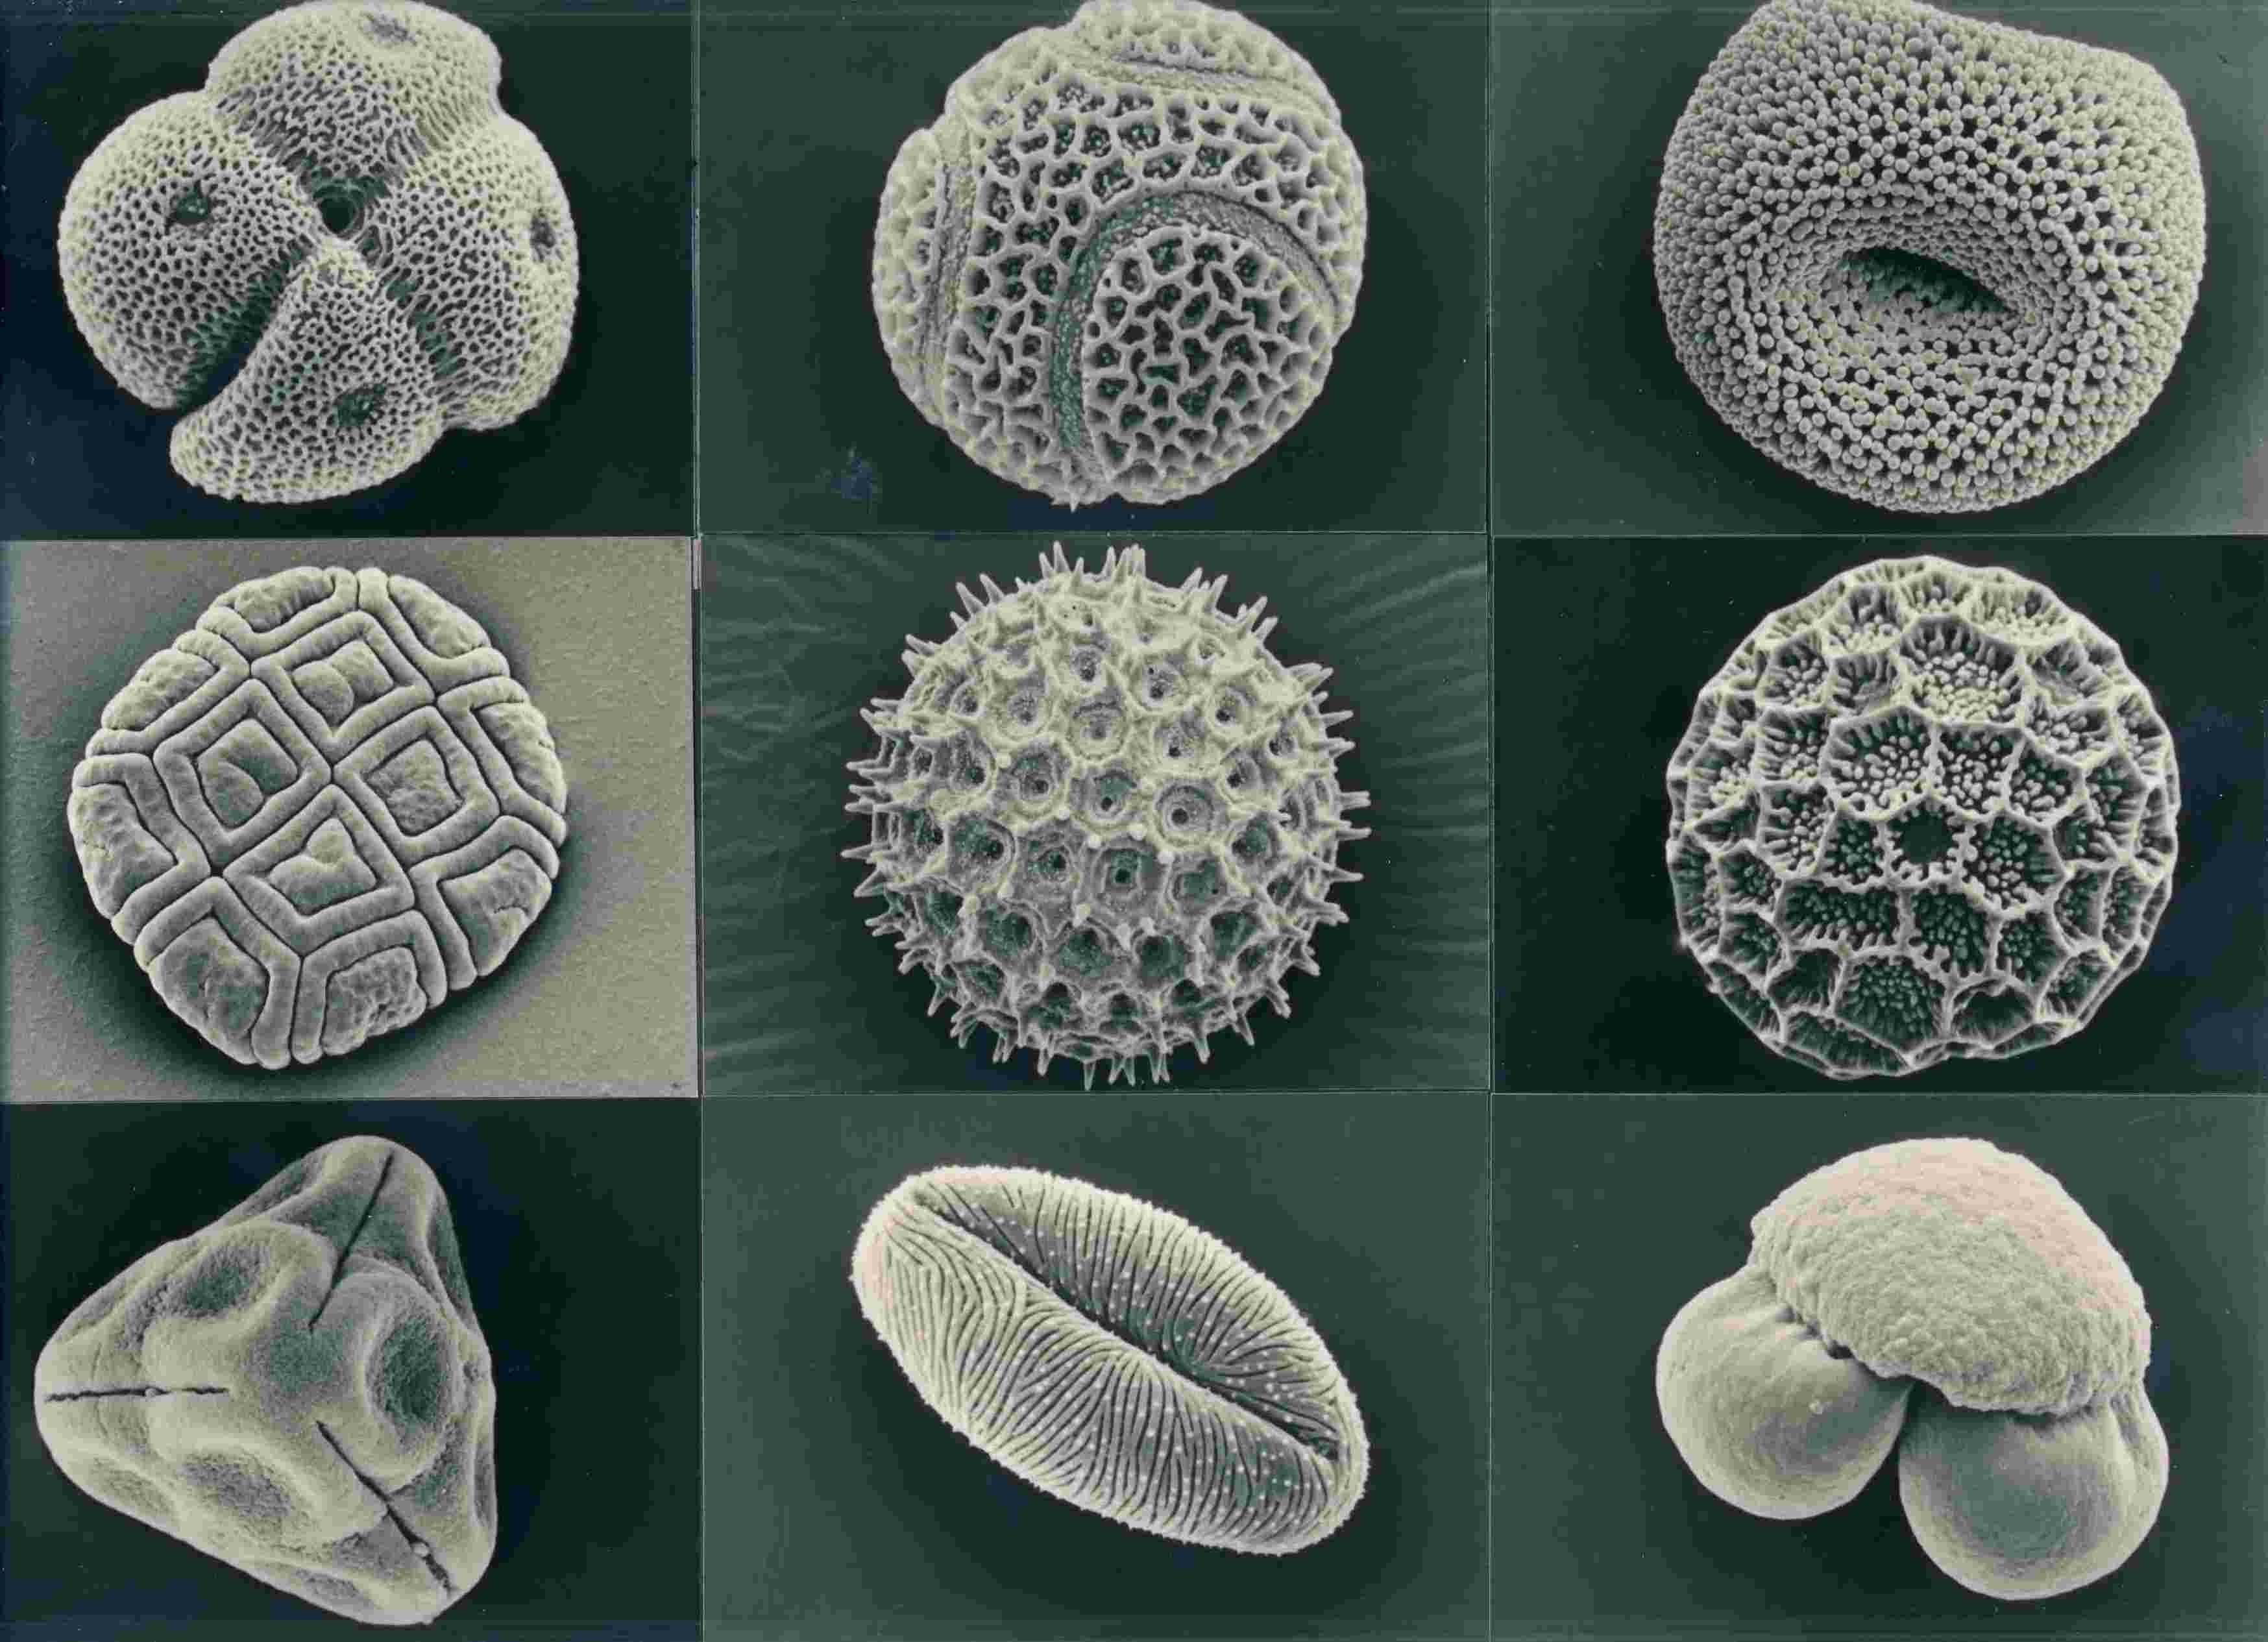 Nine pollen grains